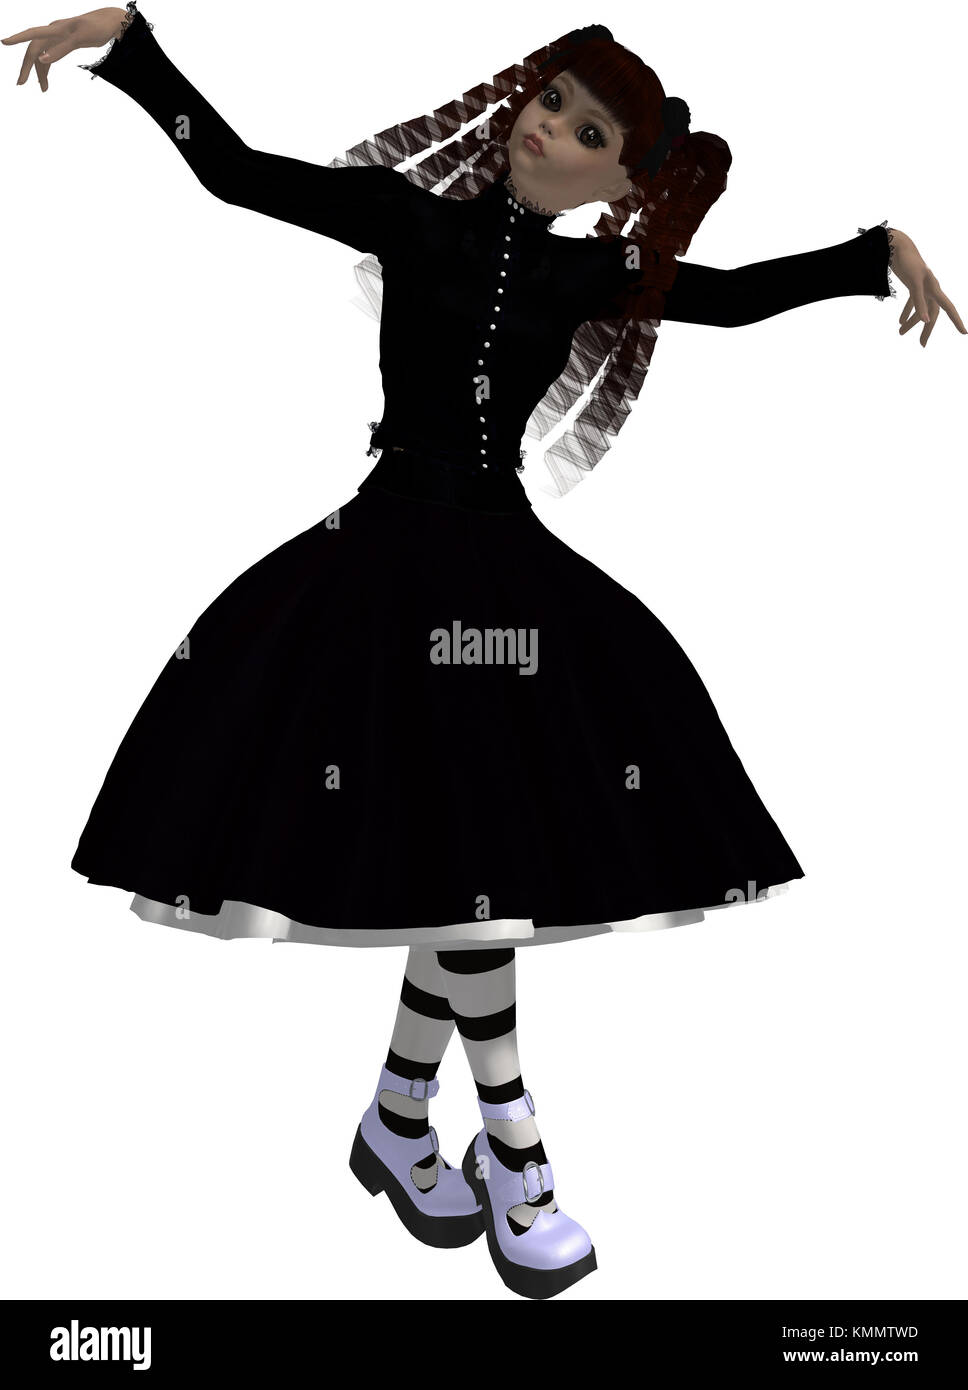 Goth Girl Stock Photos Goth Girl Slike - Alamy-7756